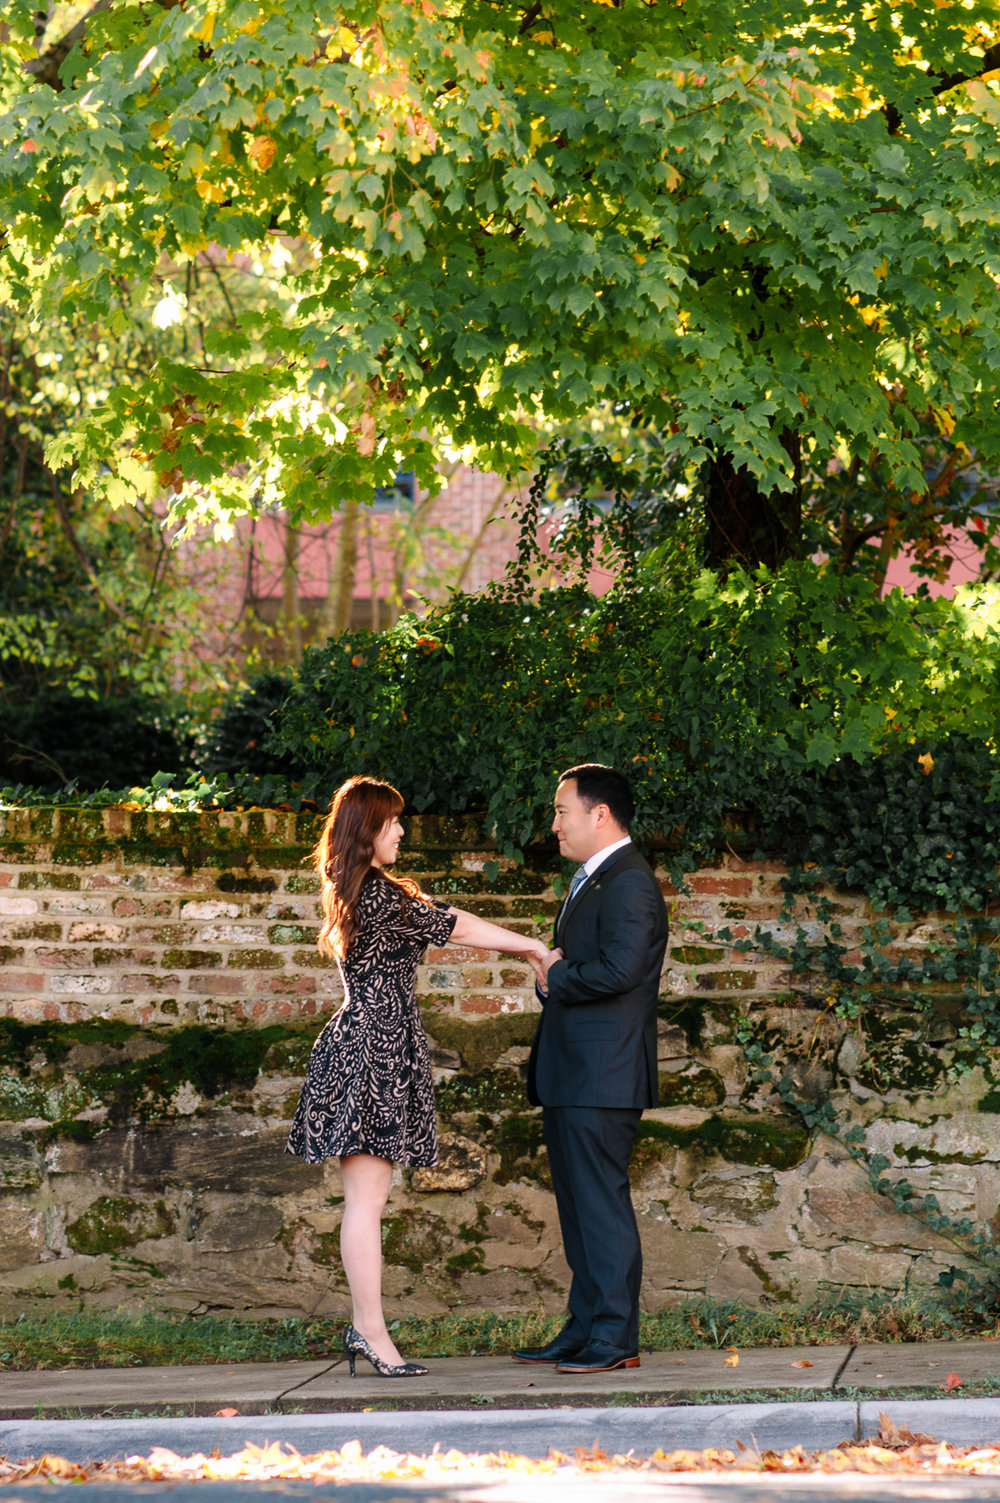 engagement_downtownfredericksburg_Fall_virginiaweddingphotographer_youseephotography_KatieKevin (3).jpg